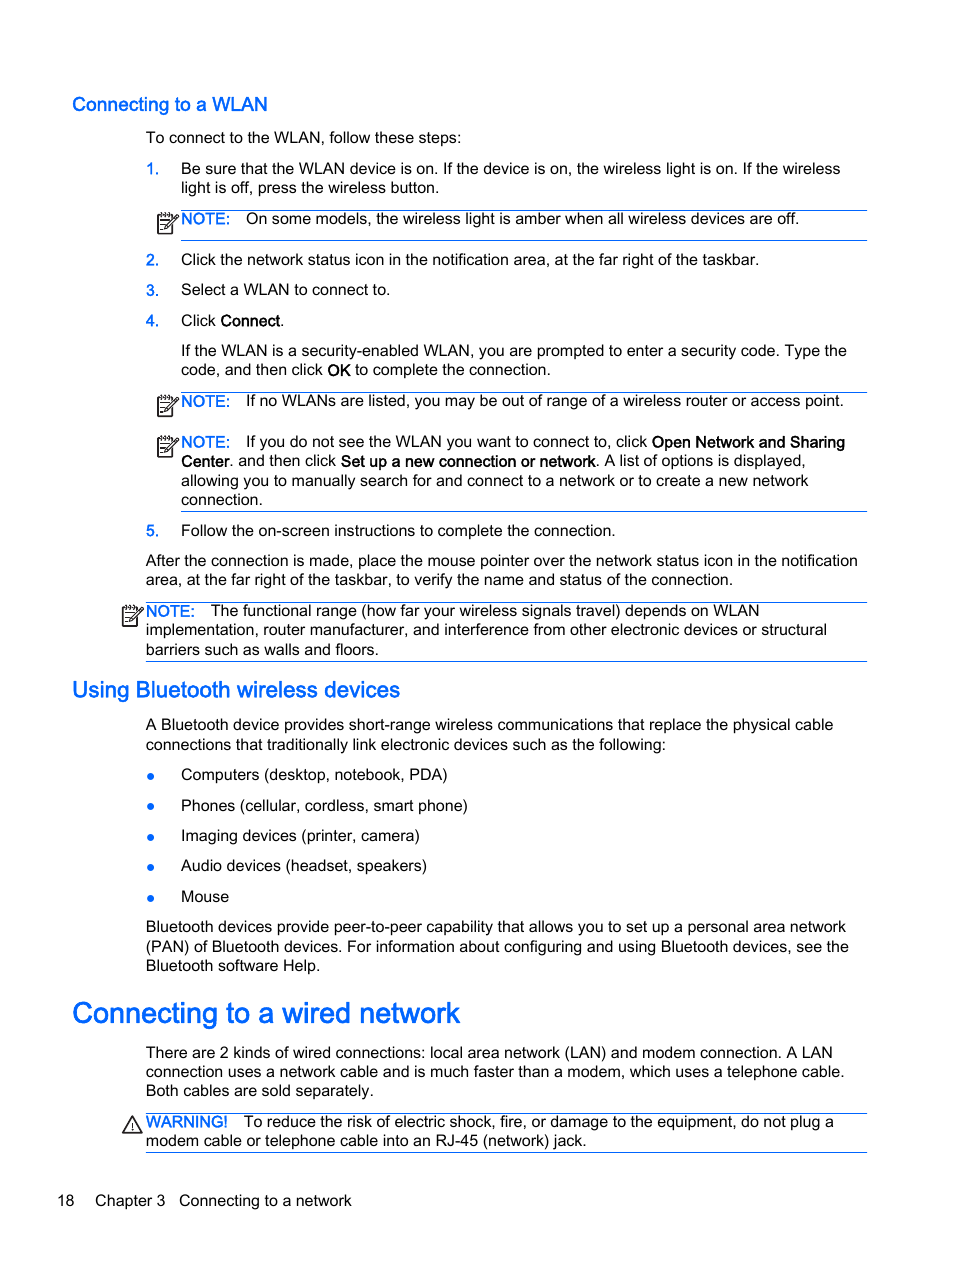 Connecting to a wlan, Using bluetooth wireless devices, Connecting